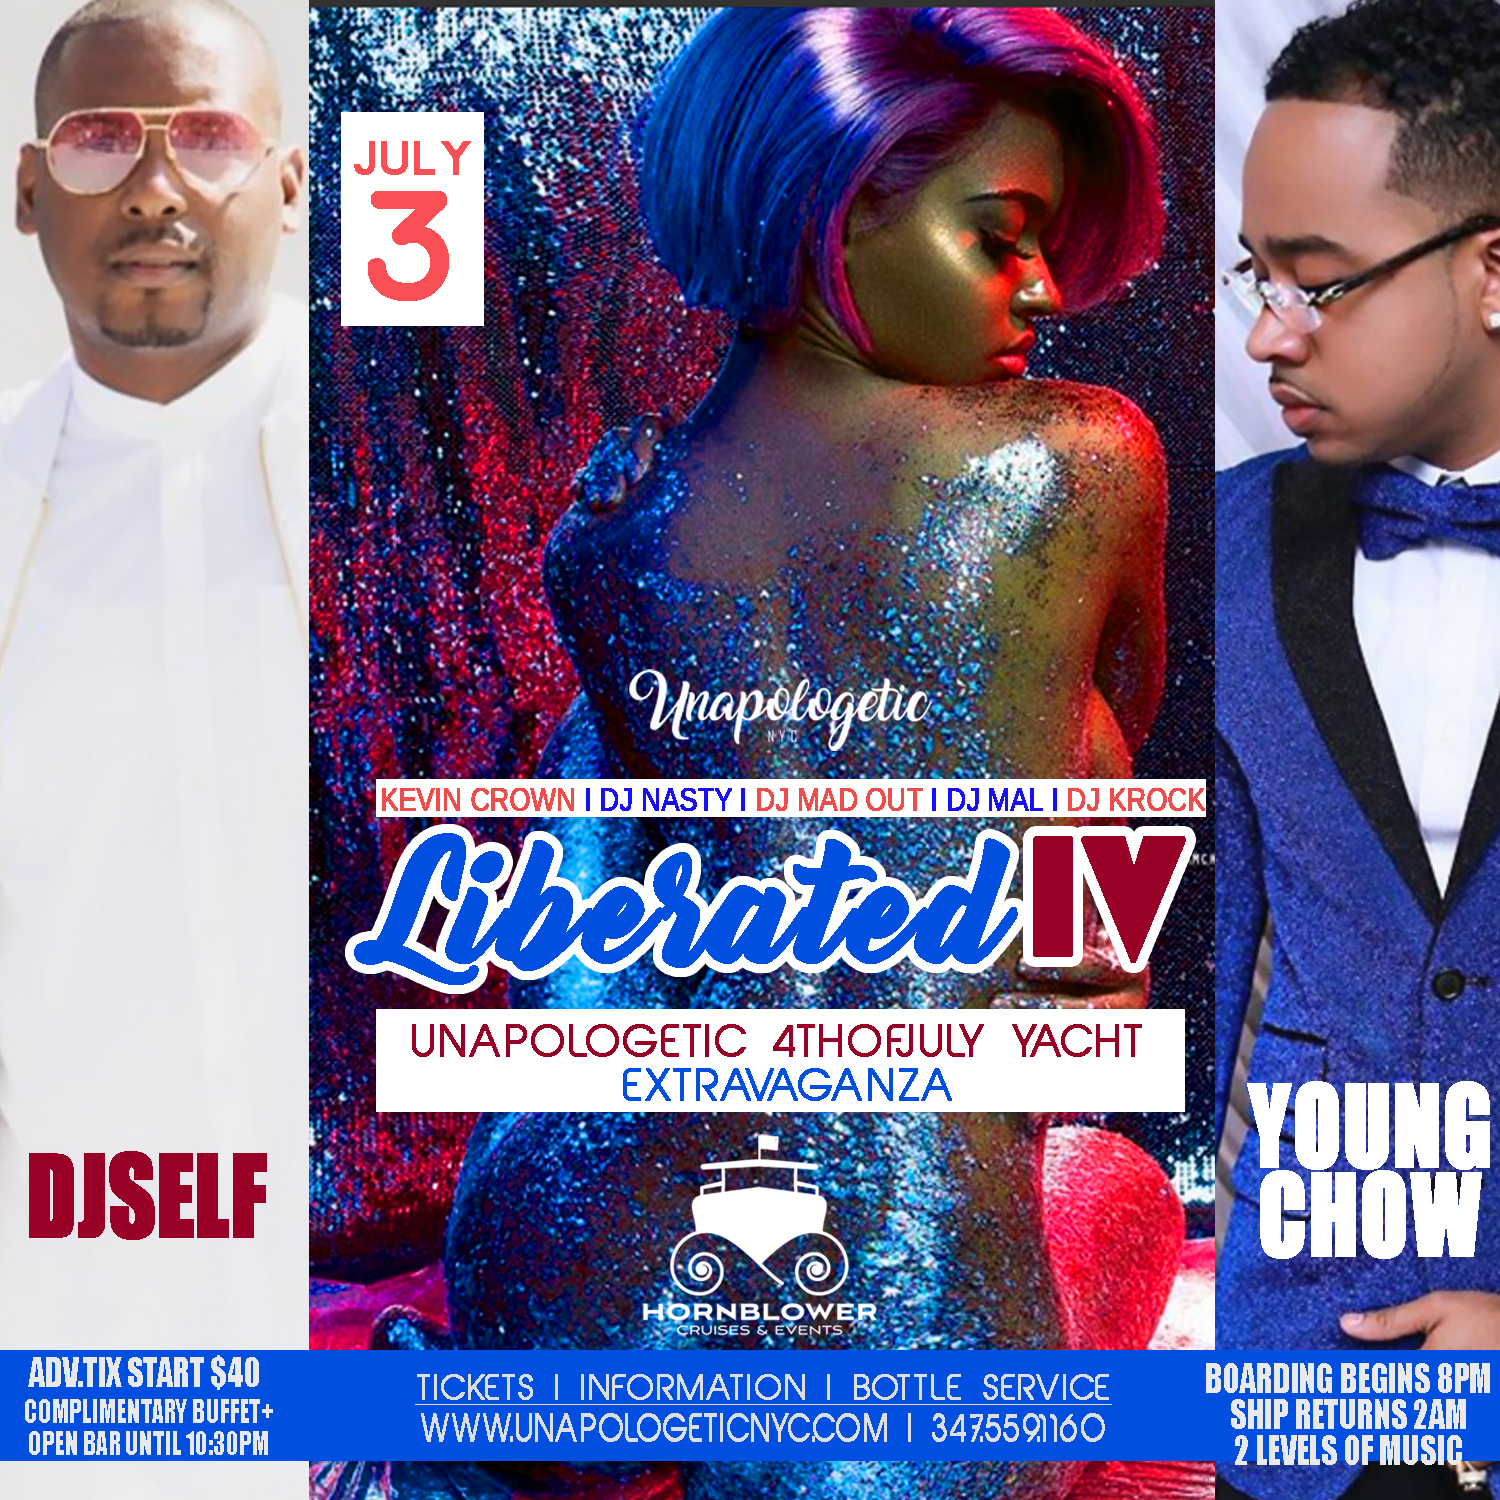 LIBERATED IV YACHT AFFAIR I DJ SELF I YOUNG CHOW